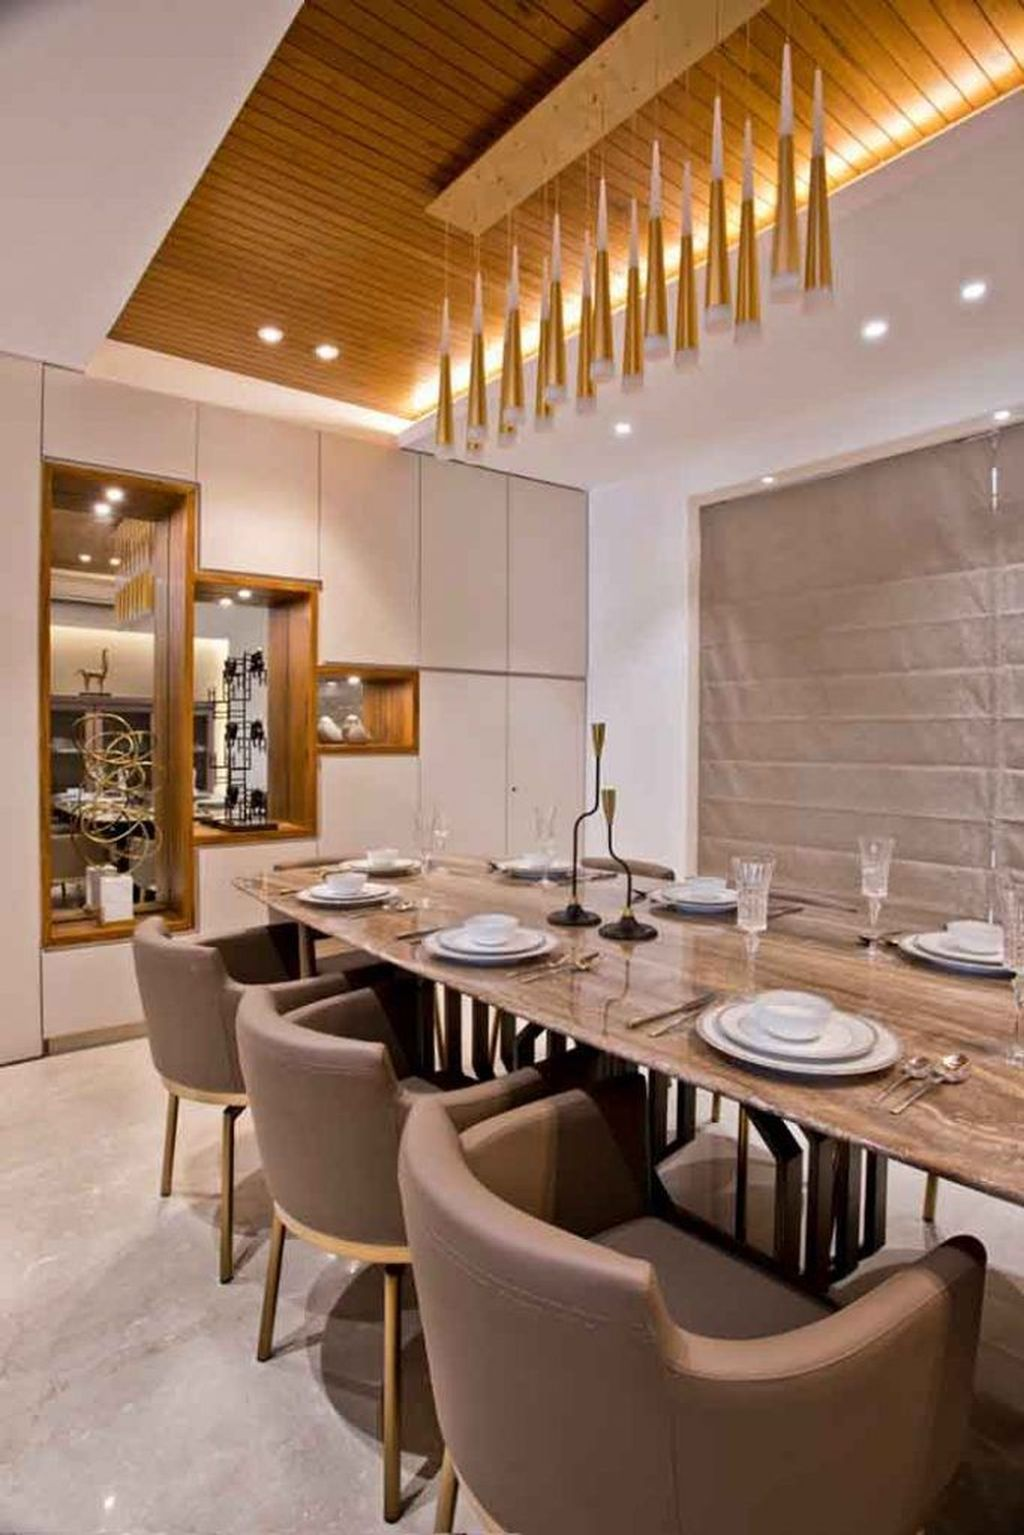 Admirable Dining Room Design Ideas You Will Love 03 1